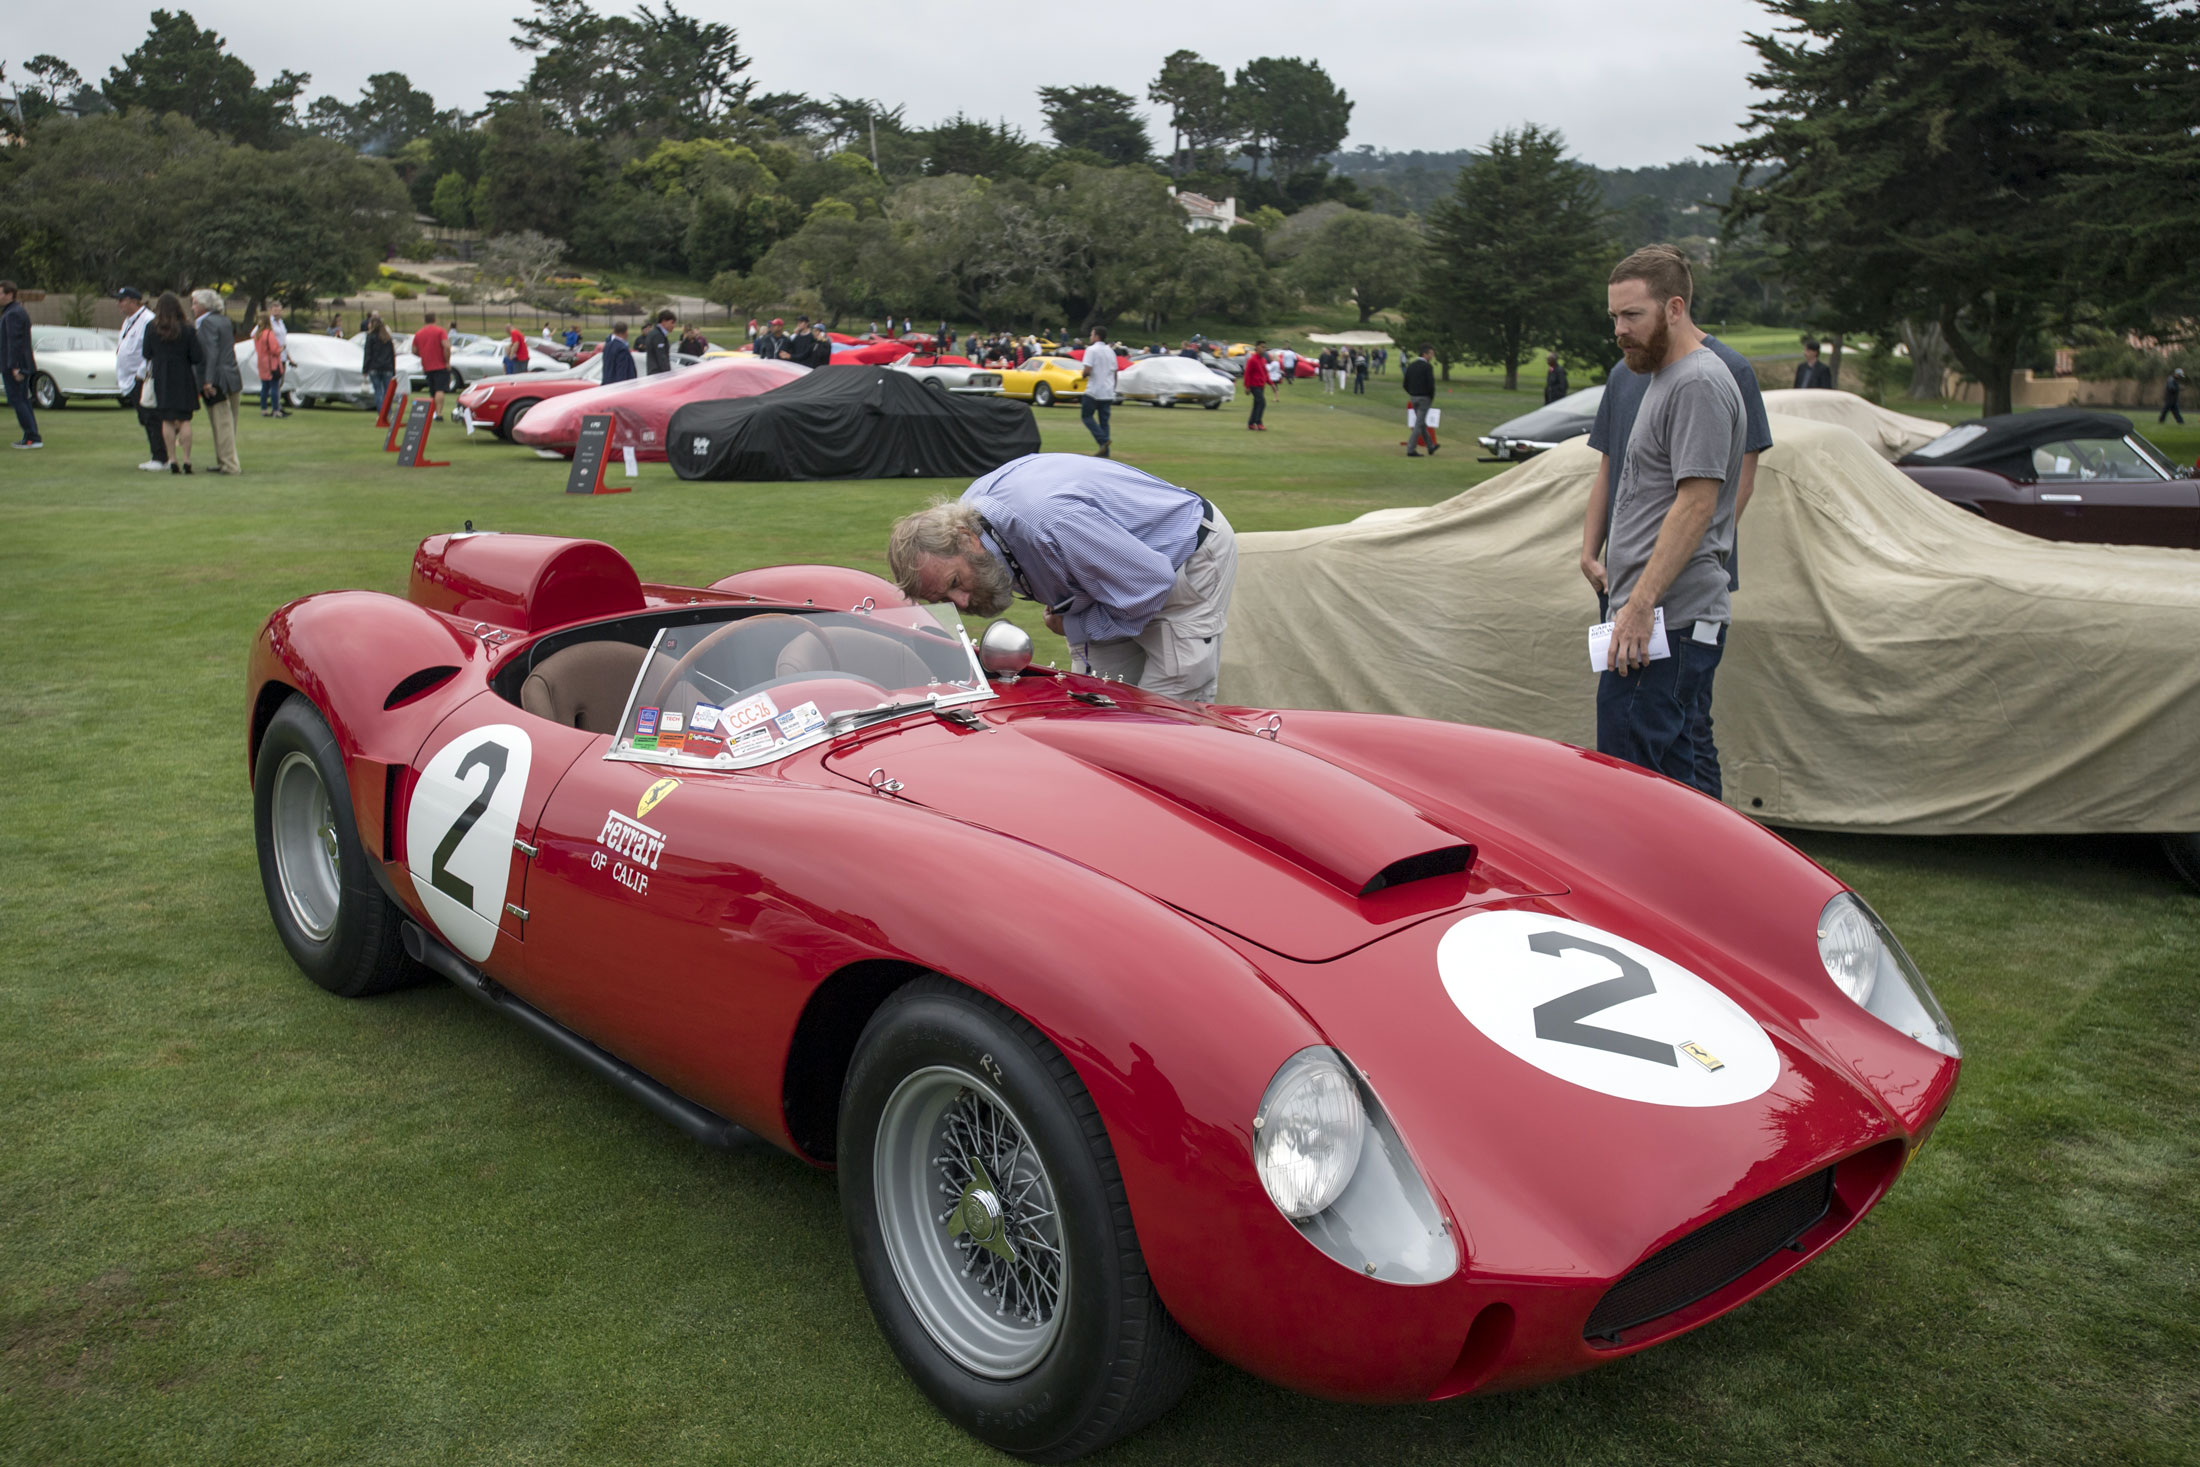 Get Up Close and Personal With the World\'s Top Classic Cars - Bloomberg